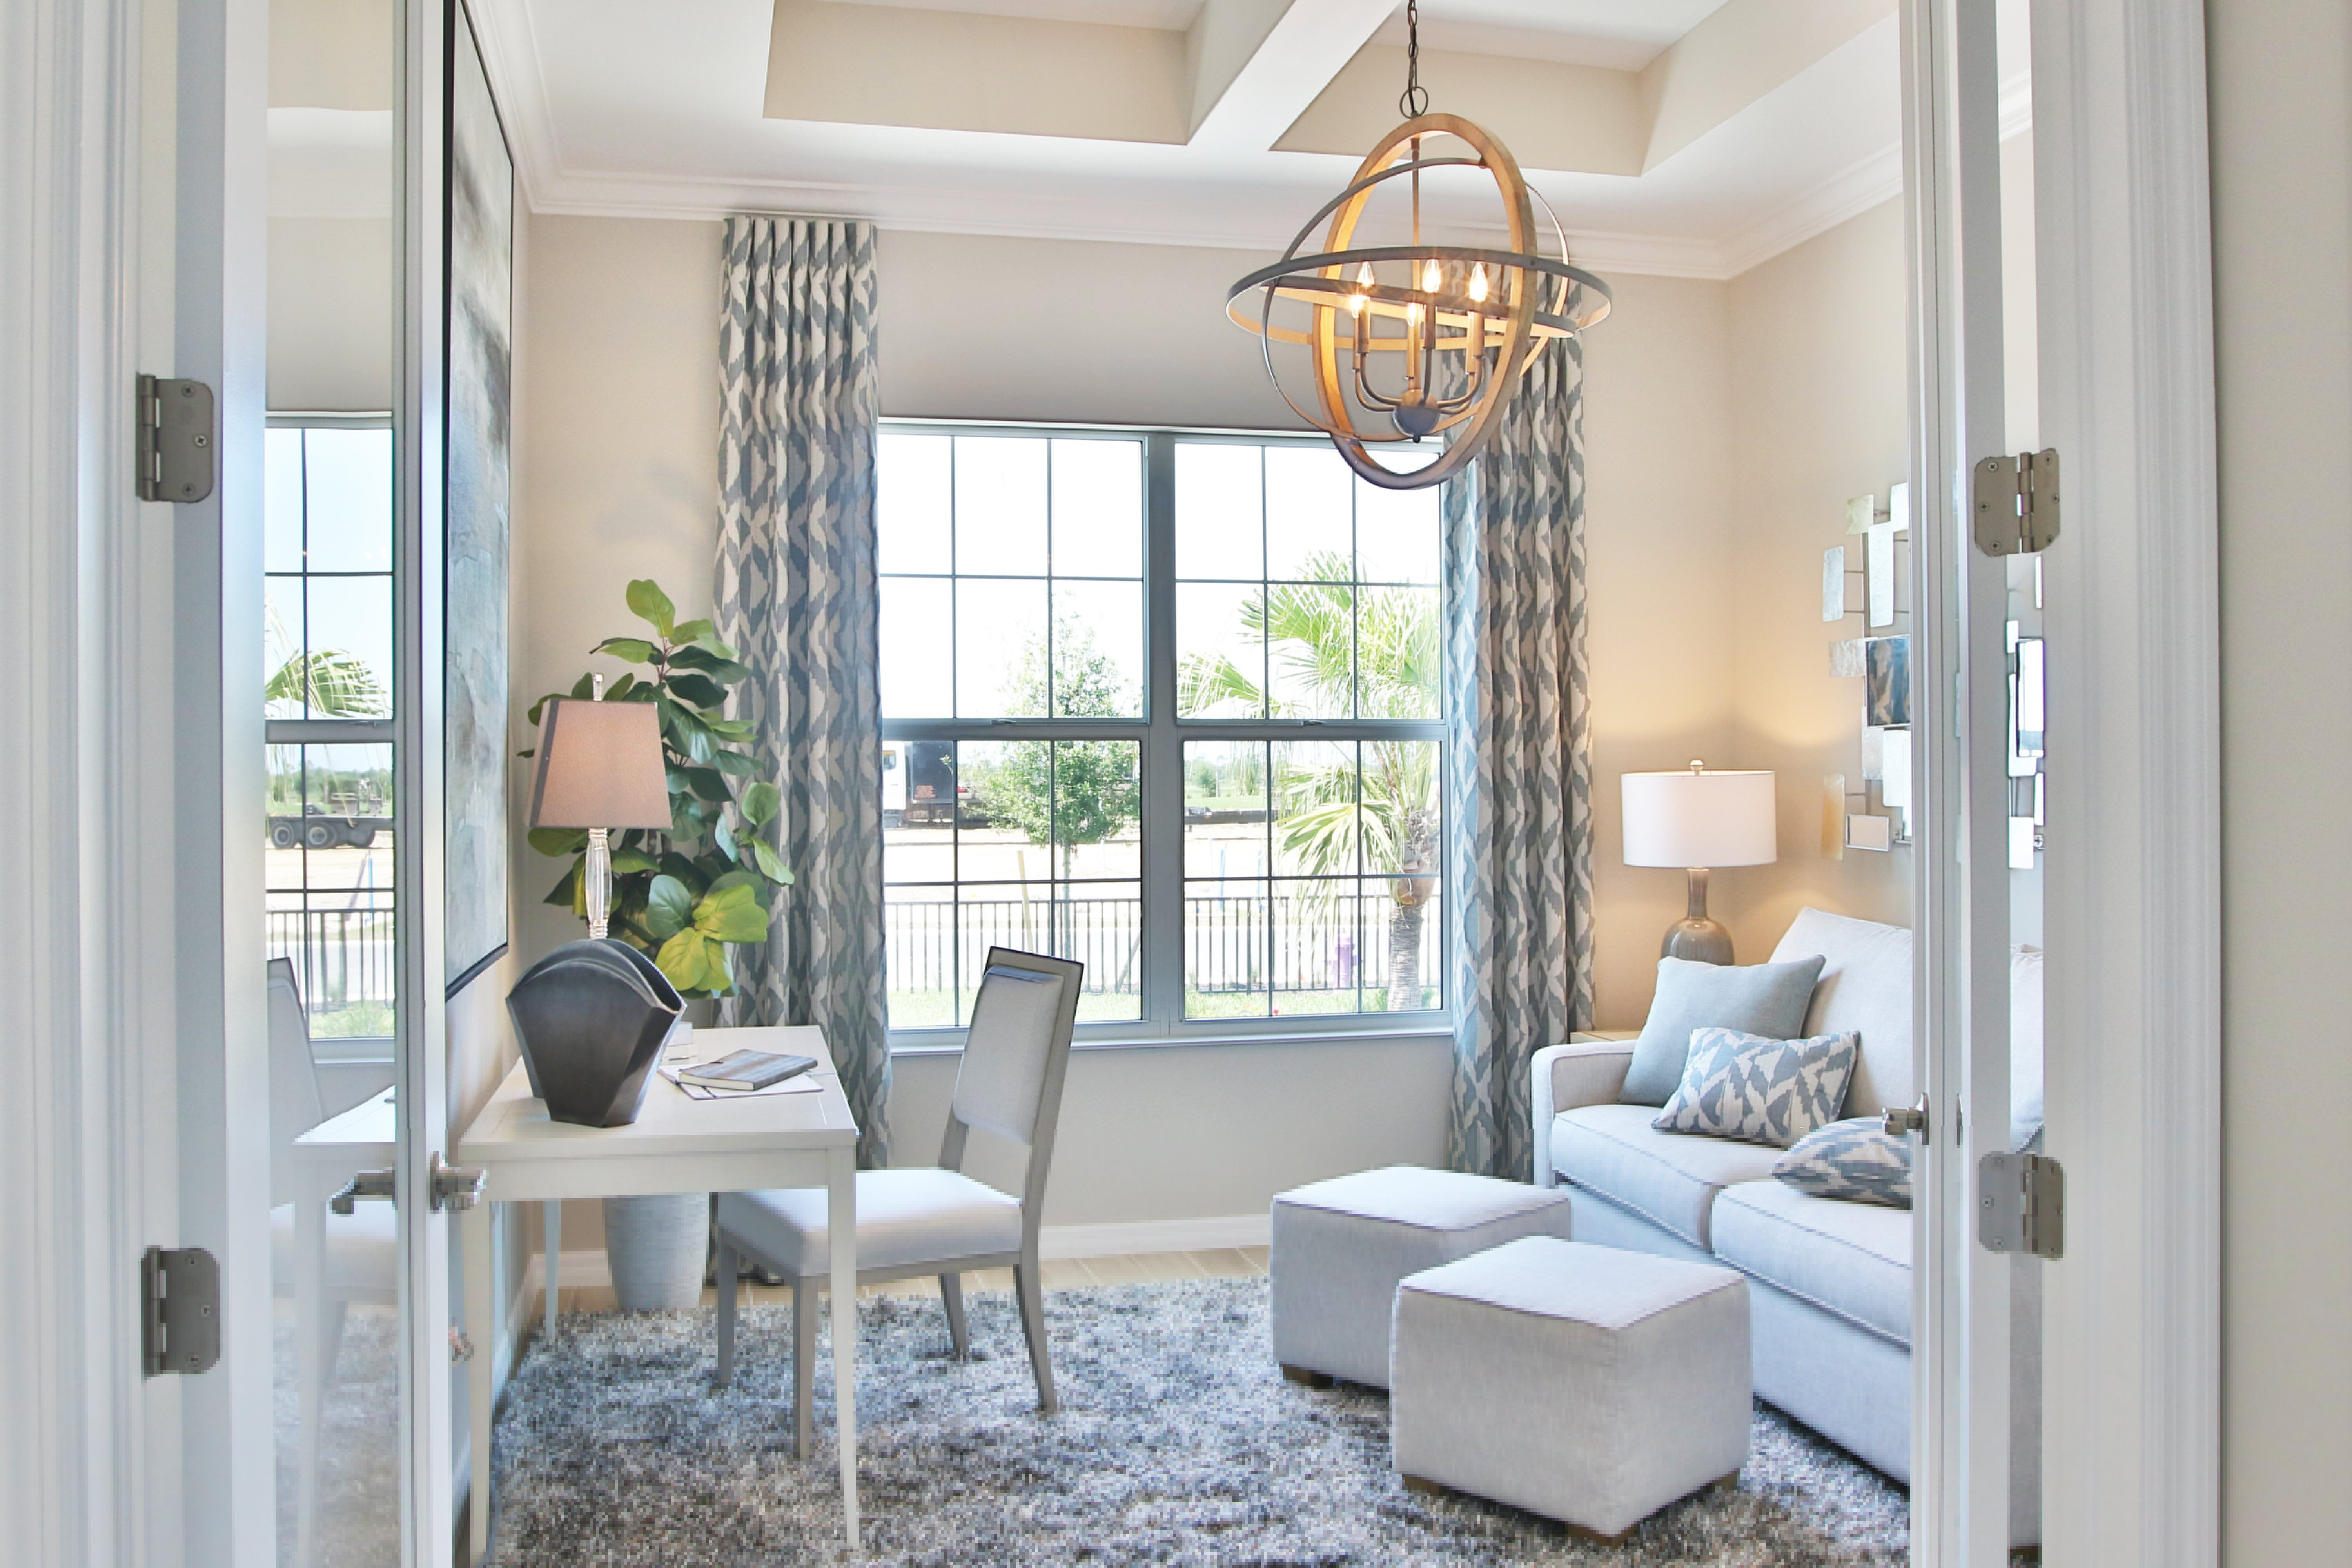 Living Area featured in the Westwind II By Lennar in Punta Gorda, FL